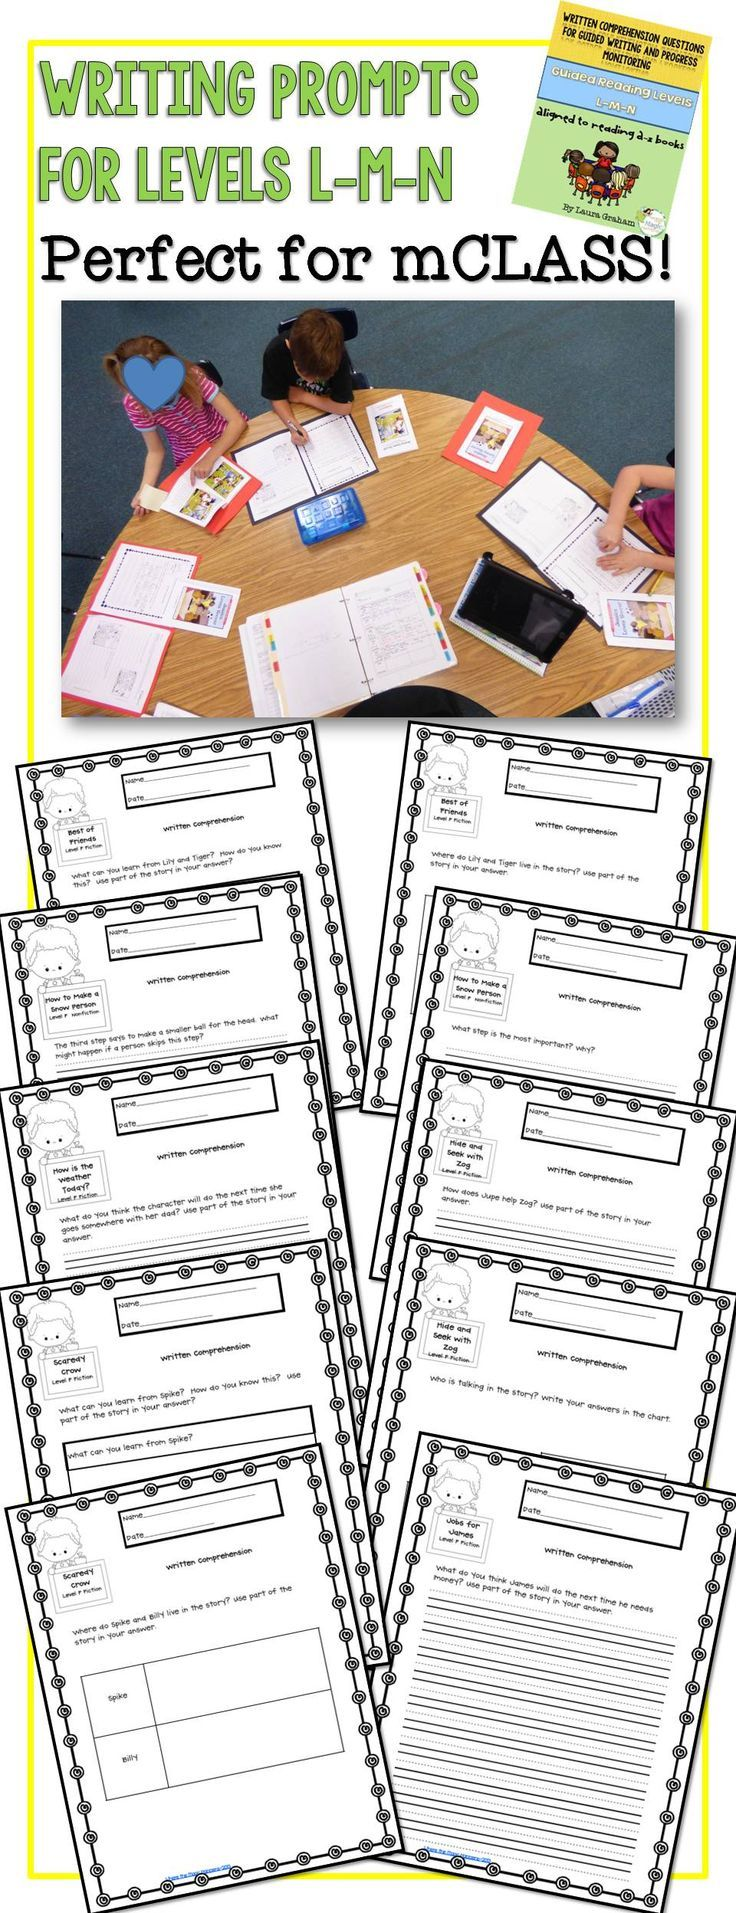 Worksheet Q Reading Level worksheet q reading level mikyu free 1000 ideas about guided levels on pinterest comprehension and comprehension